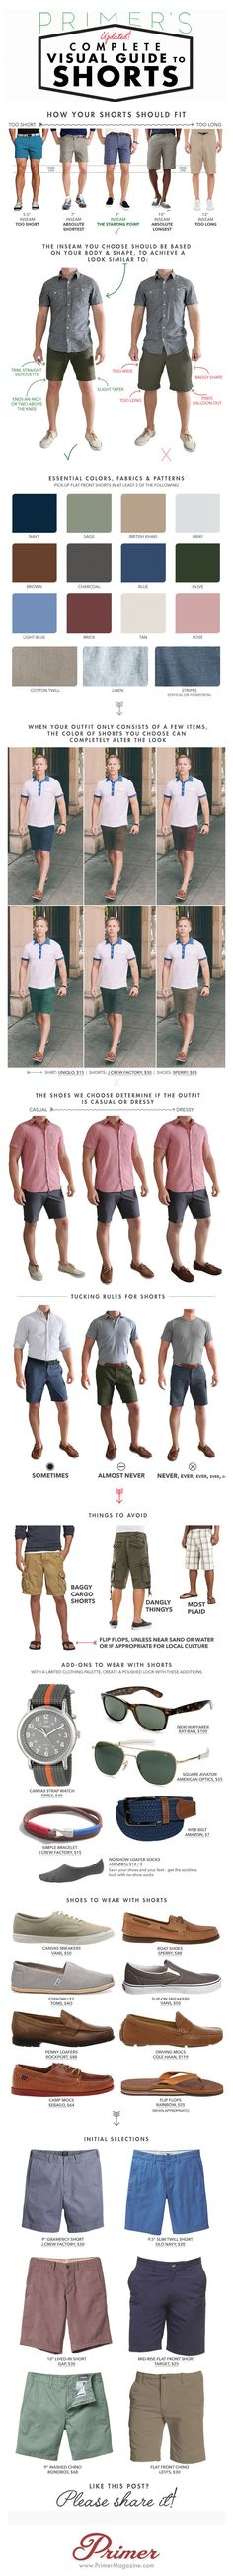 What to Wear with Shorts For Men - Fashion Infographic. Topic: Men's wear, khaki, front flat, chino, carfo short, men style.